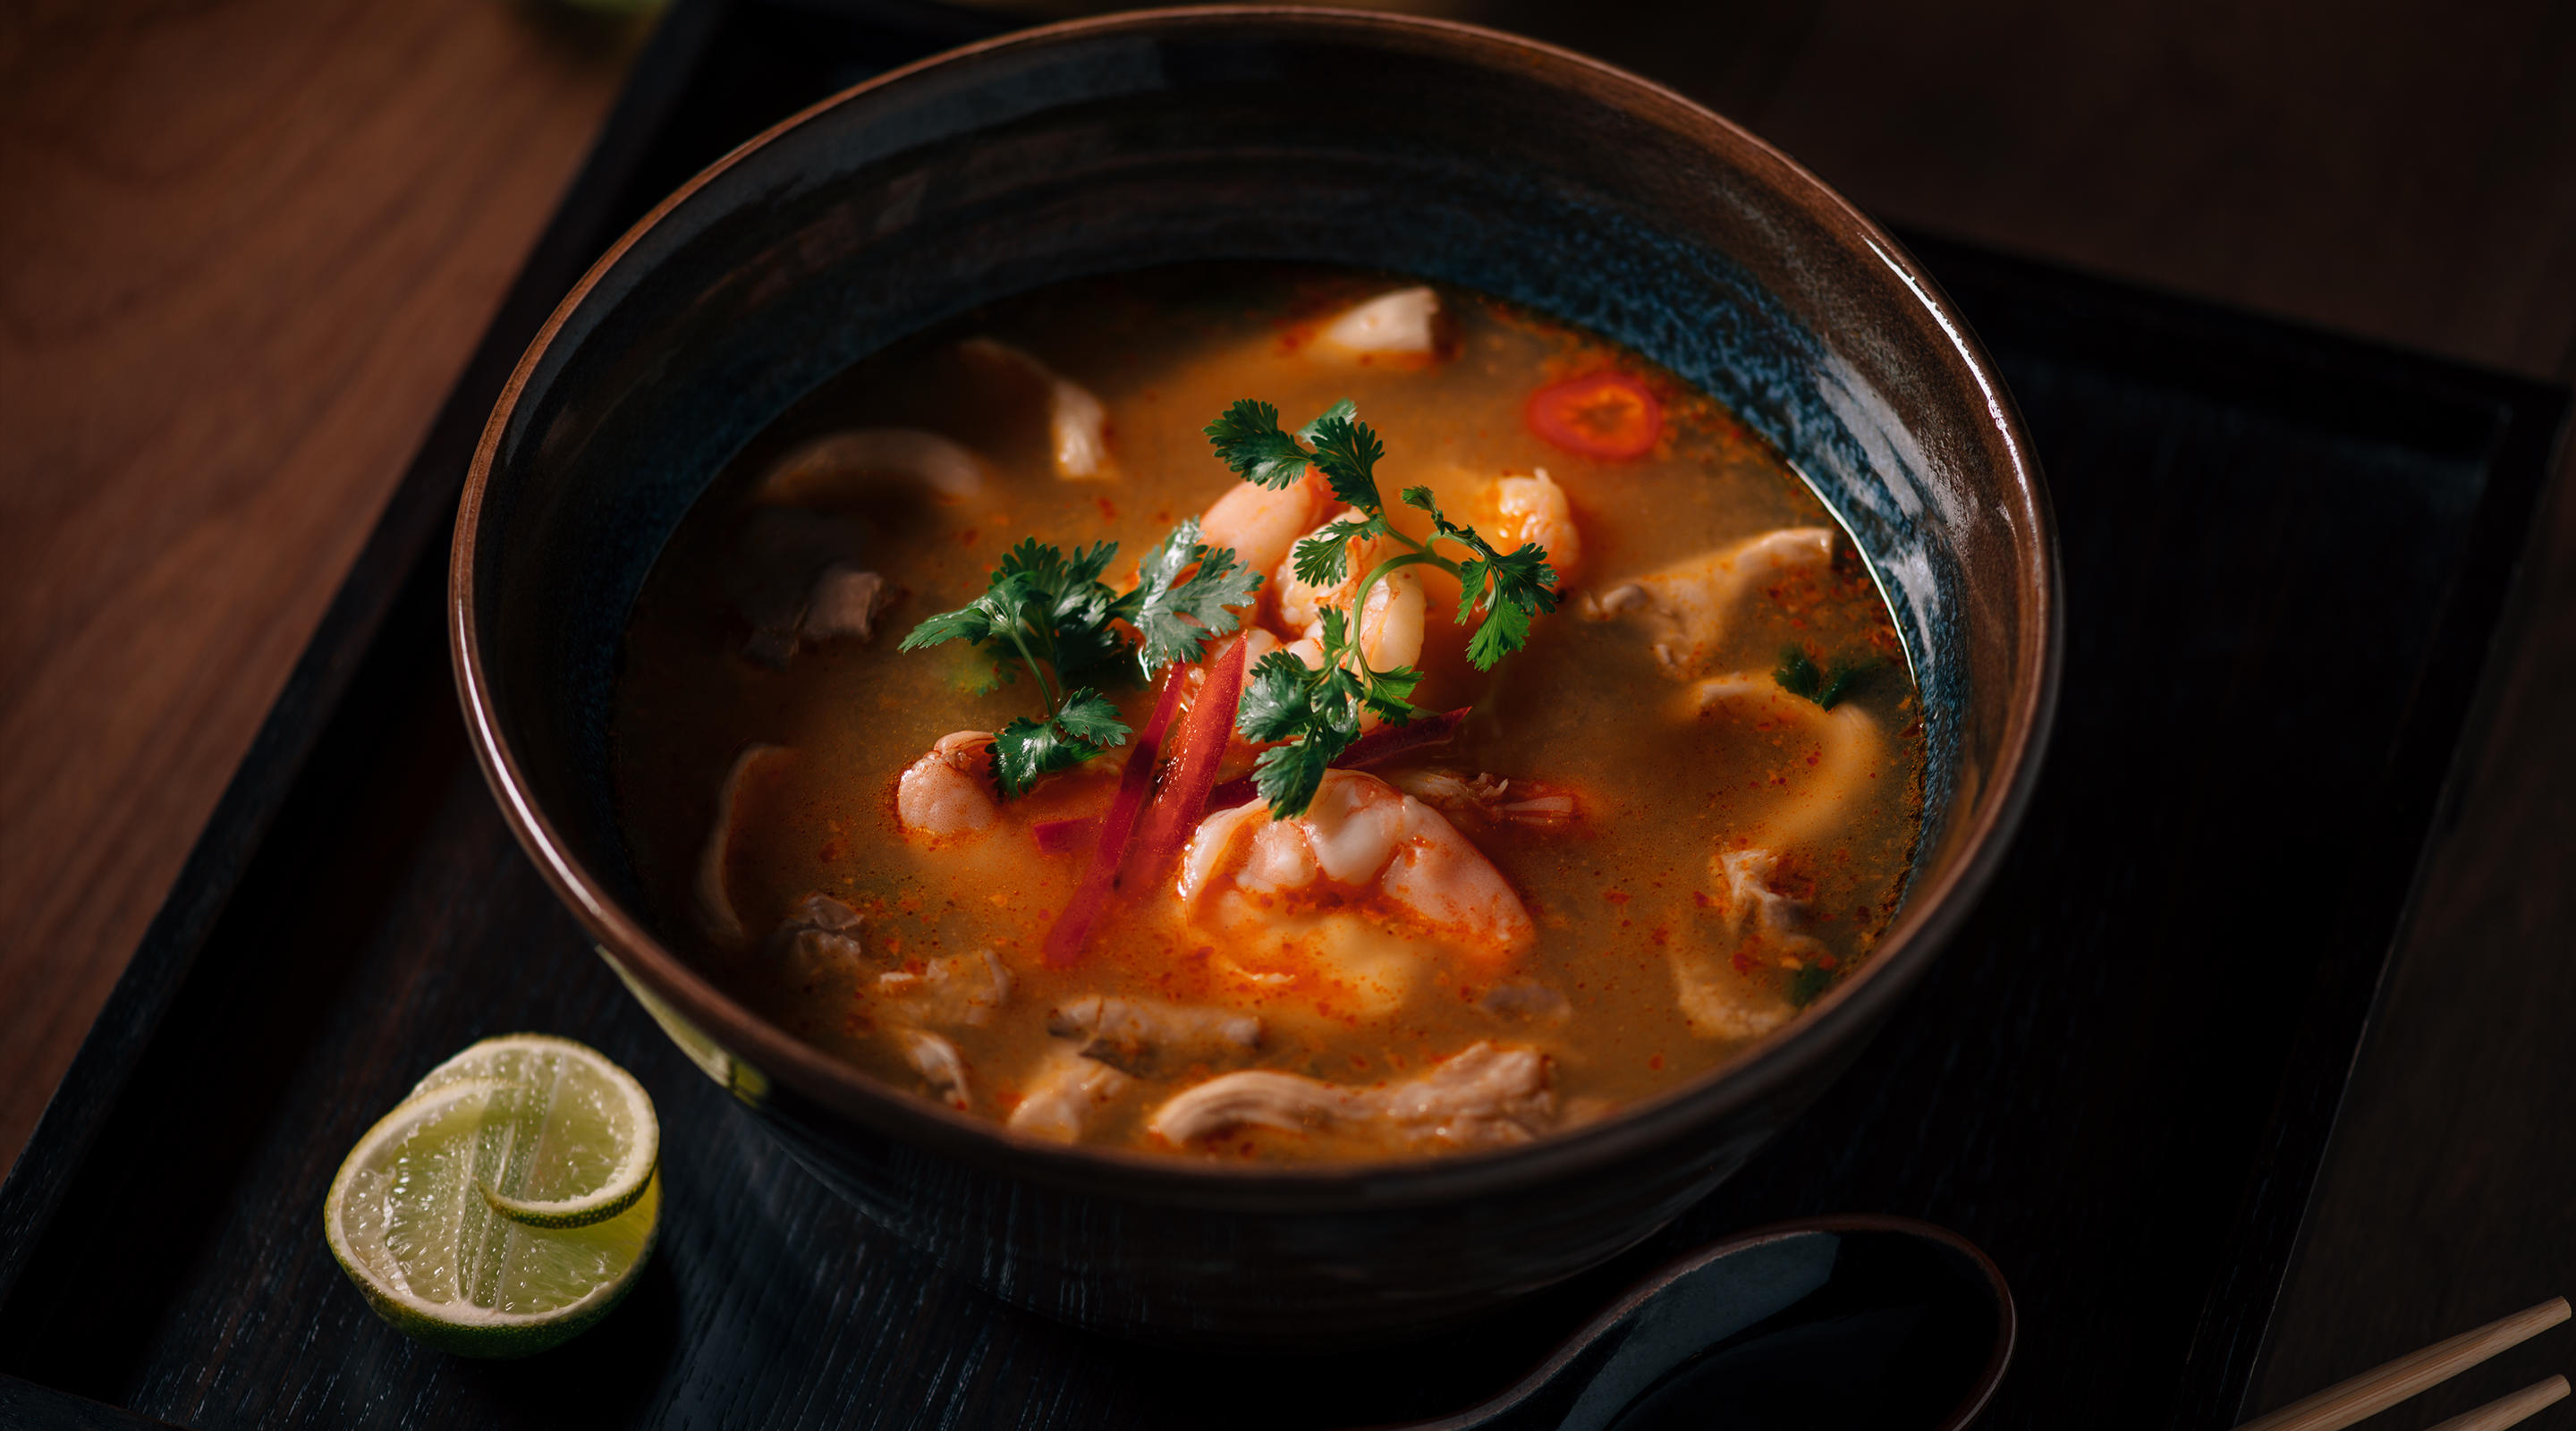 Enjoy the authentic Thai fare with the Tom Yam Soup at Lemongrass.